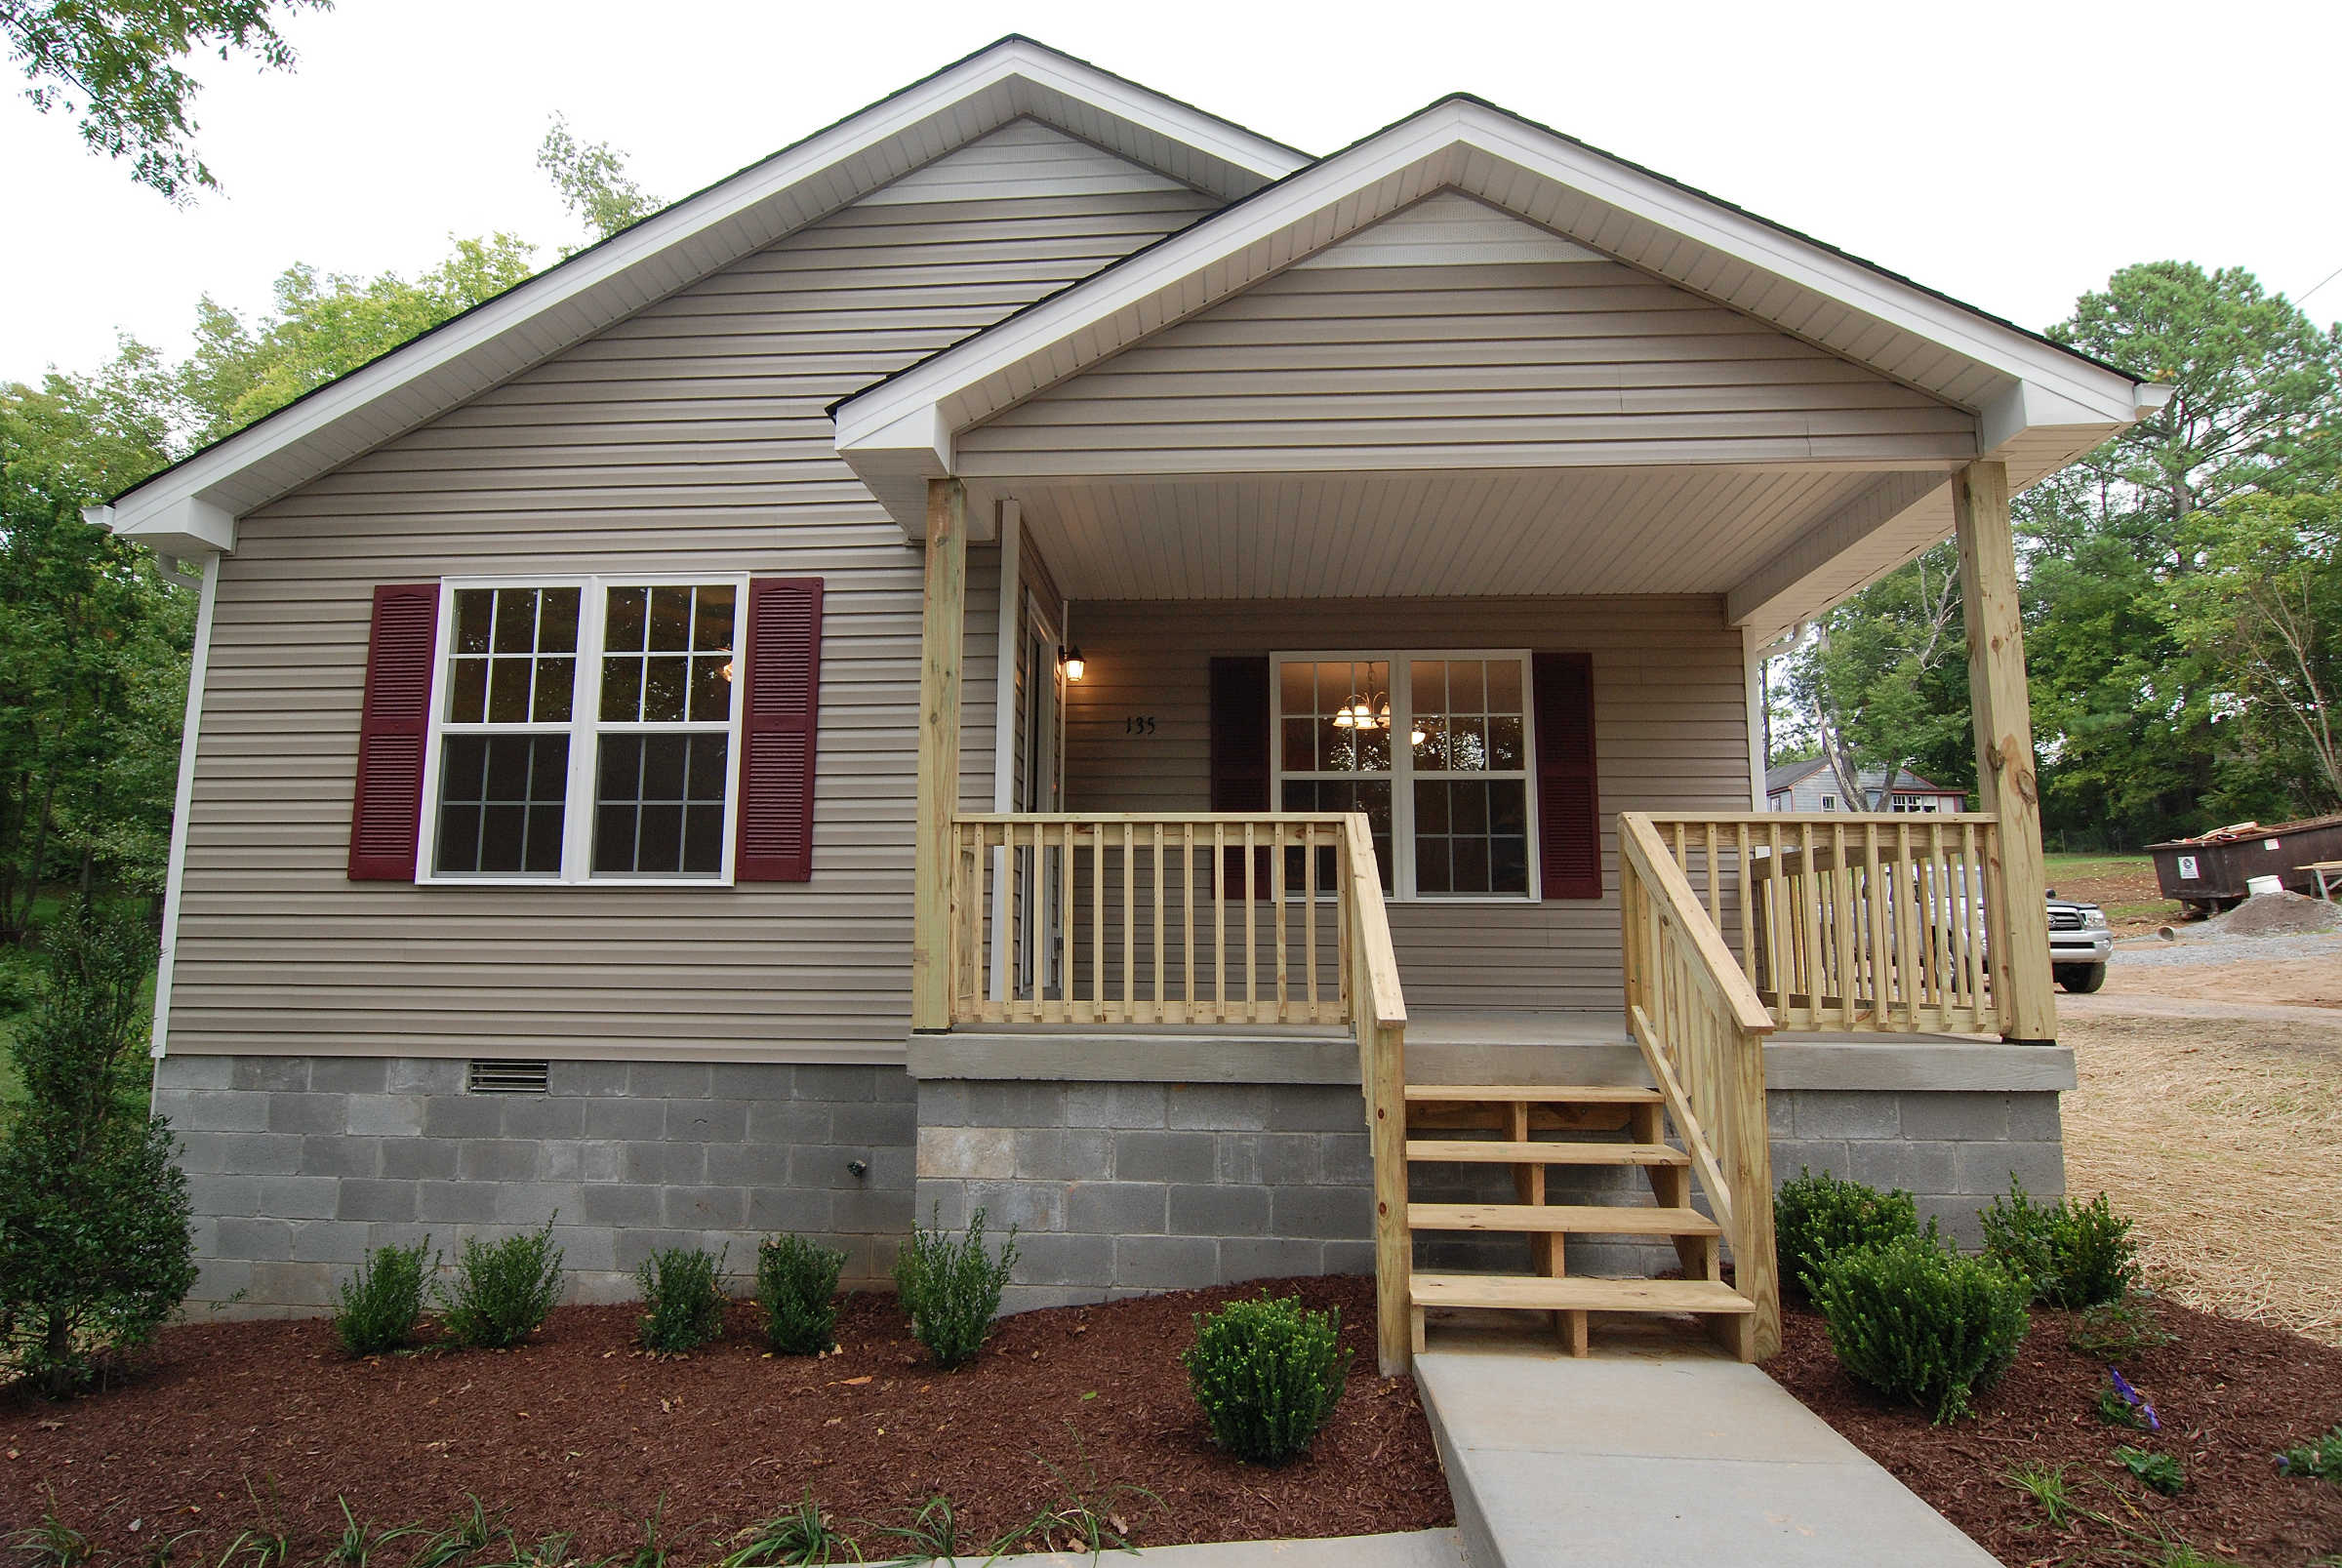 Pictures of habitat homes